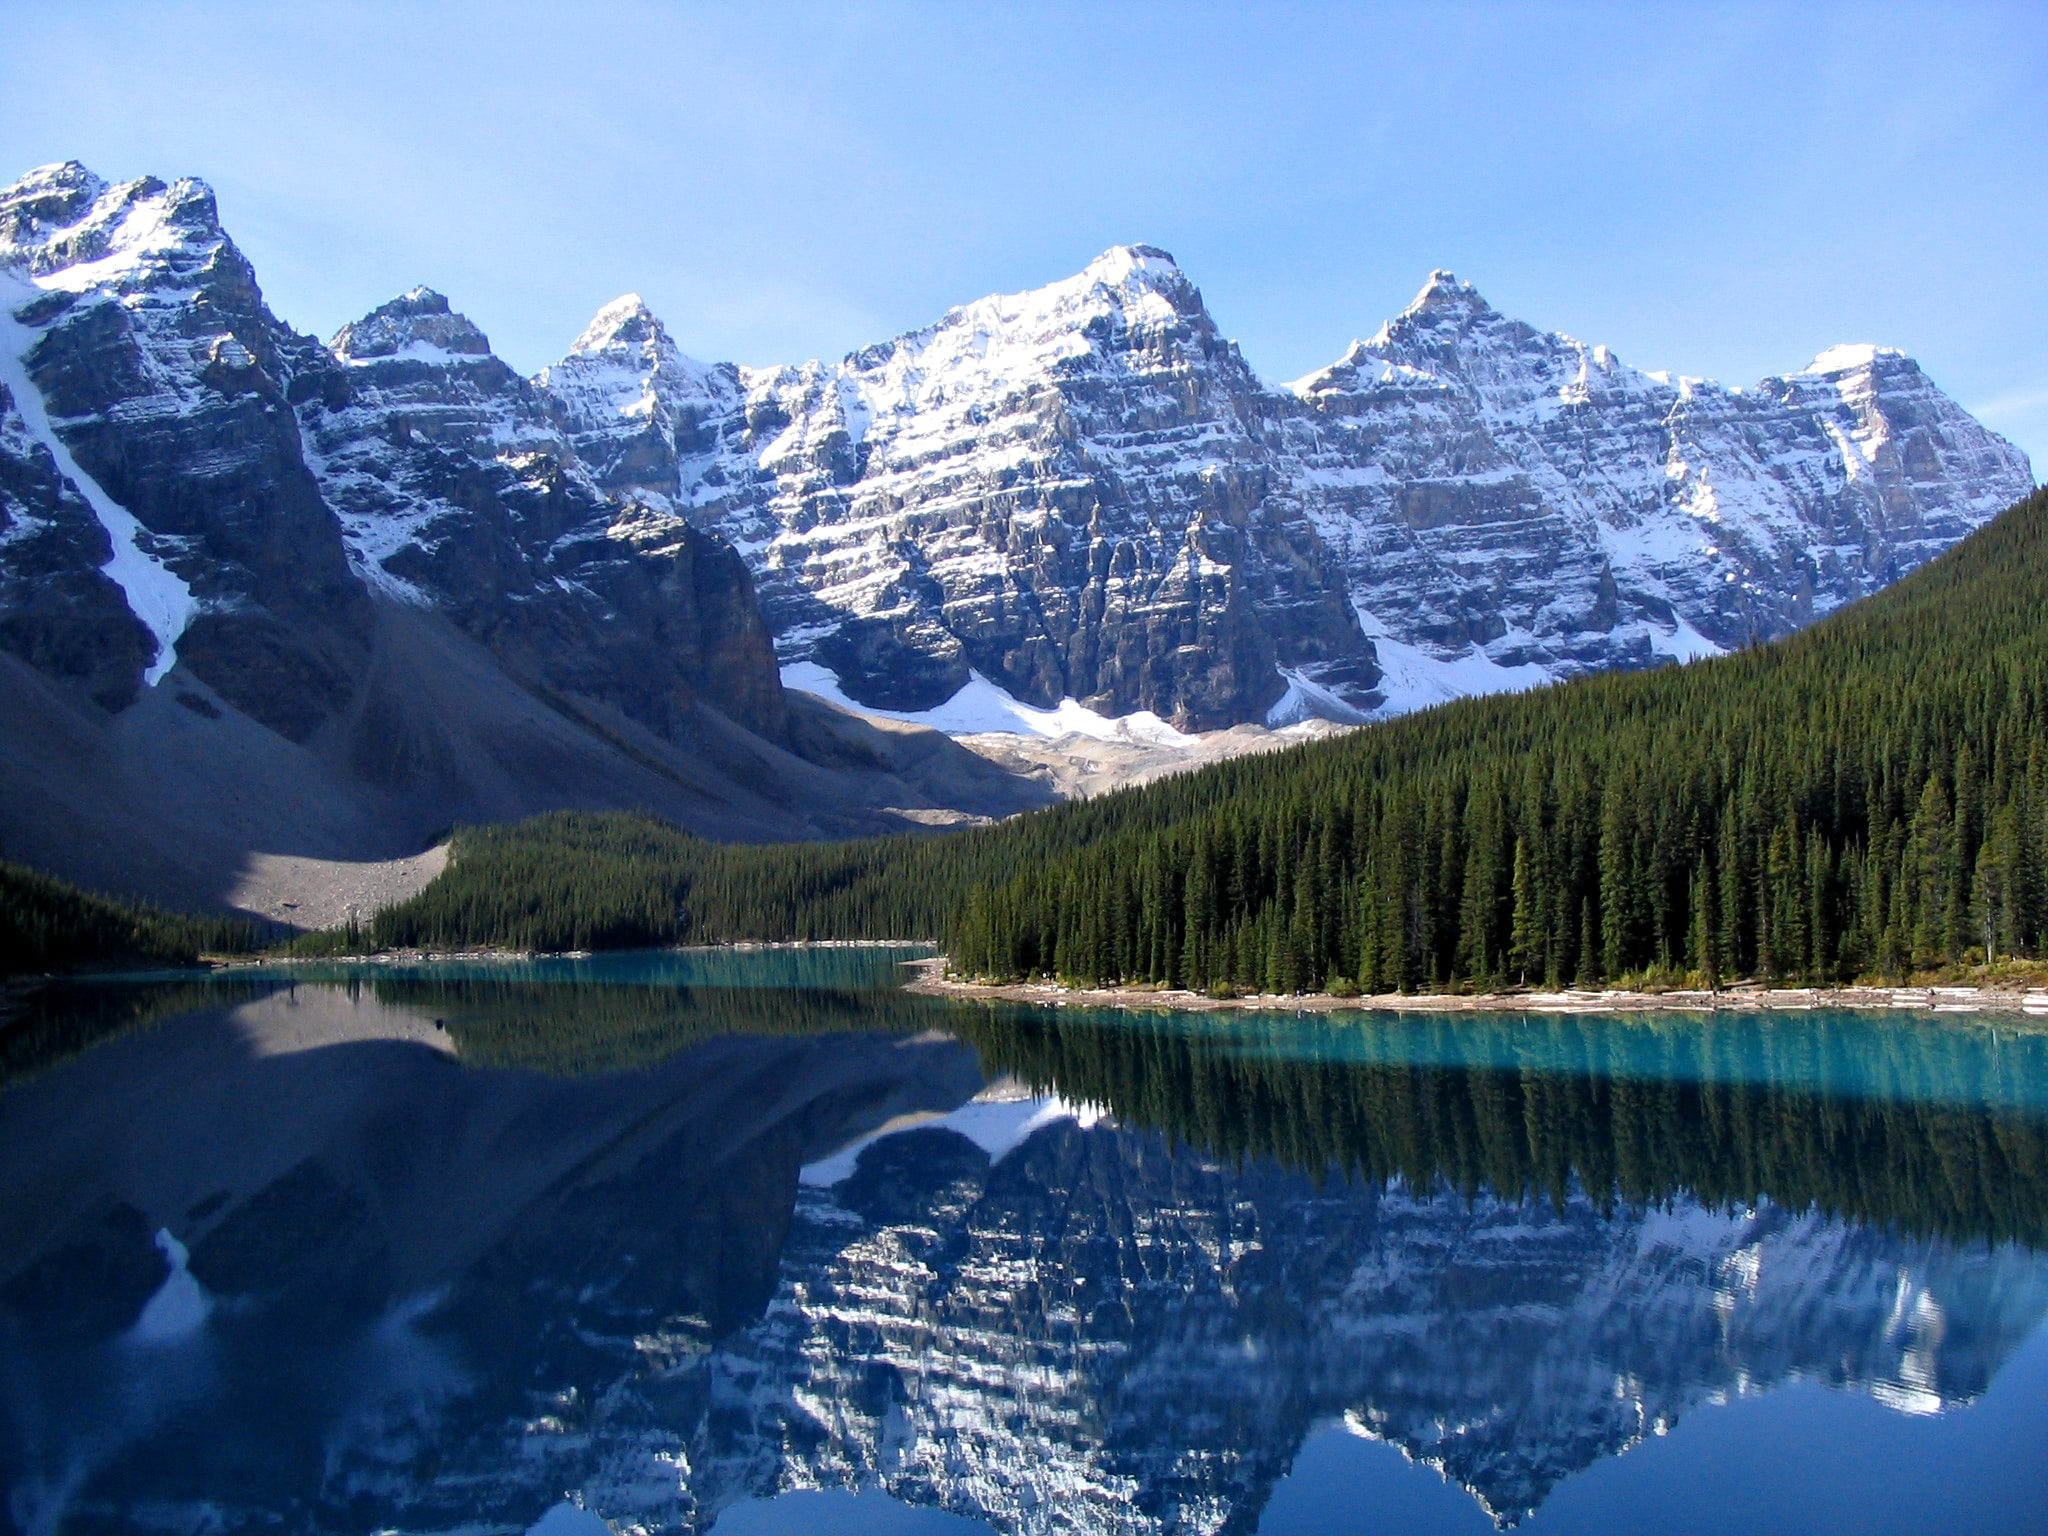 Banff Incentive Travel: Hotels, Activities, and Event Ideas